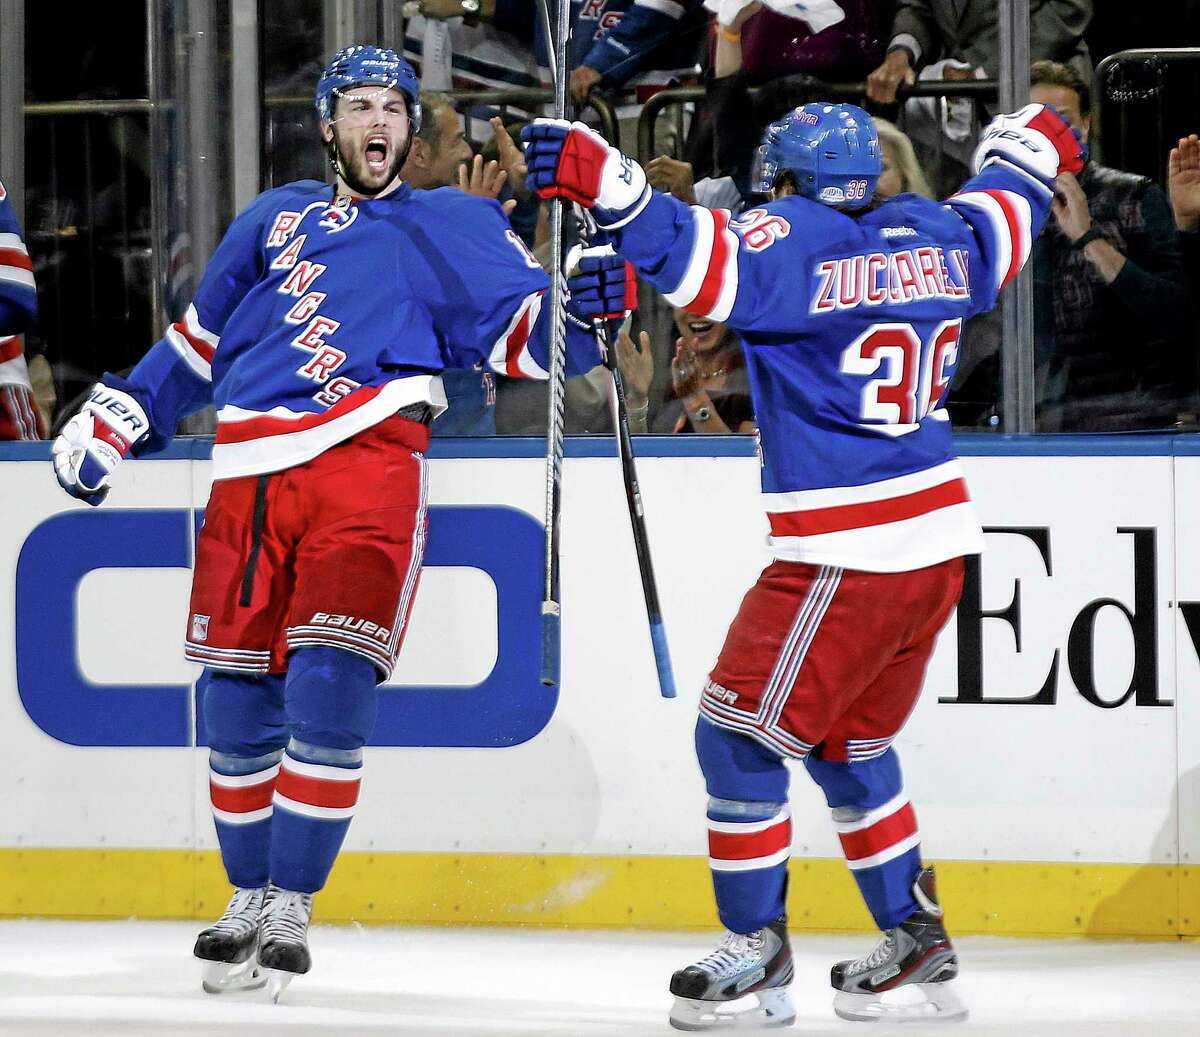 Rangers center Derick Brassard celebrates with right wing Mats Zuccarello (36) after scoring against the Canadiens during the second period Sunday night.